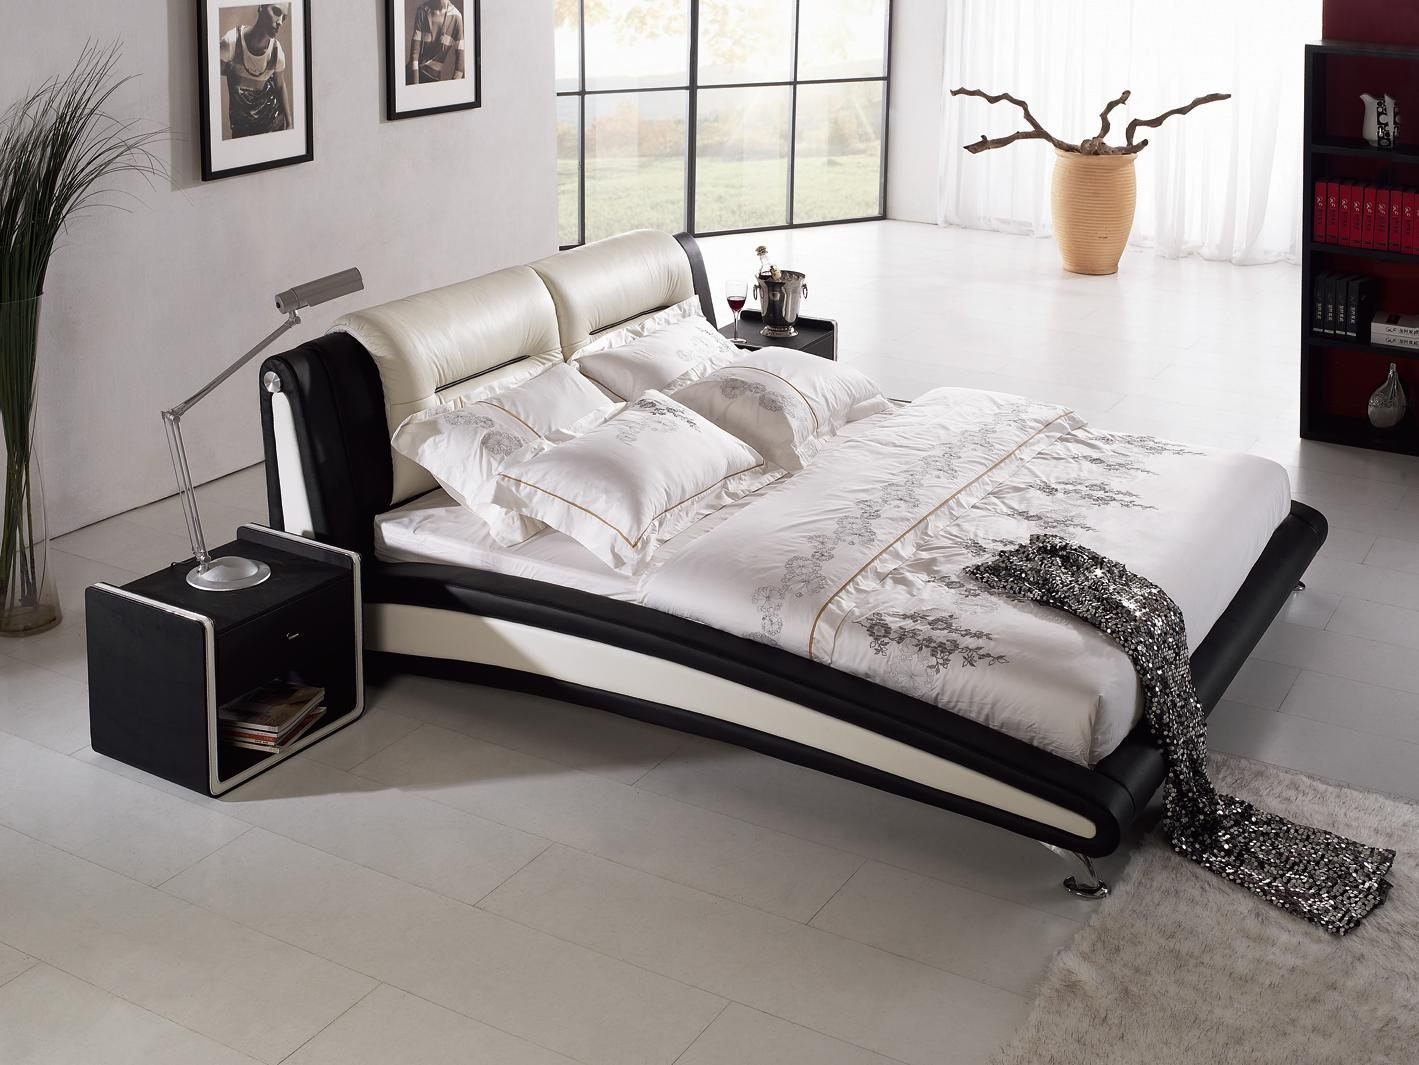 *MG* Italian Leather Bed Frame #8057, 3 size